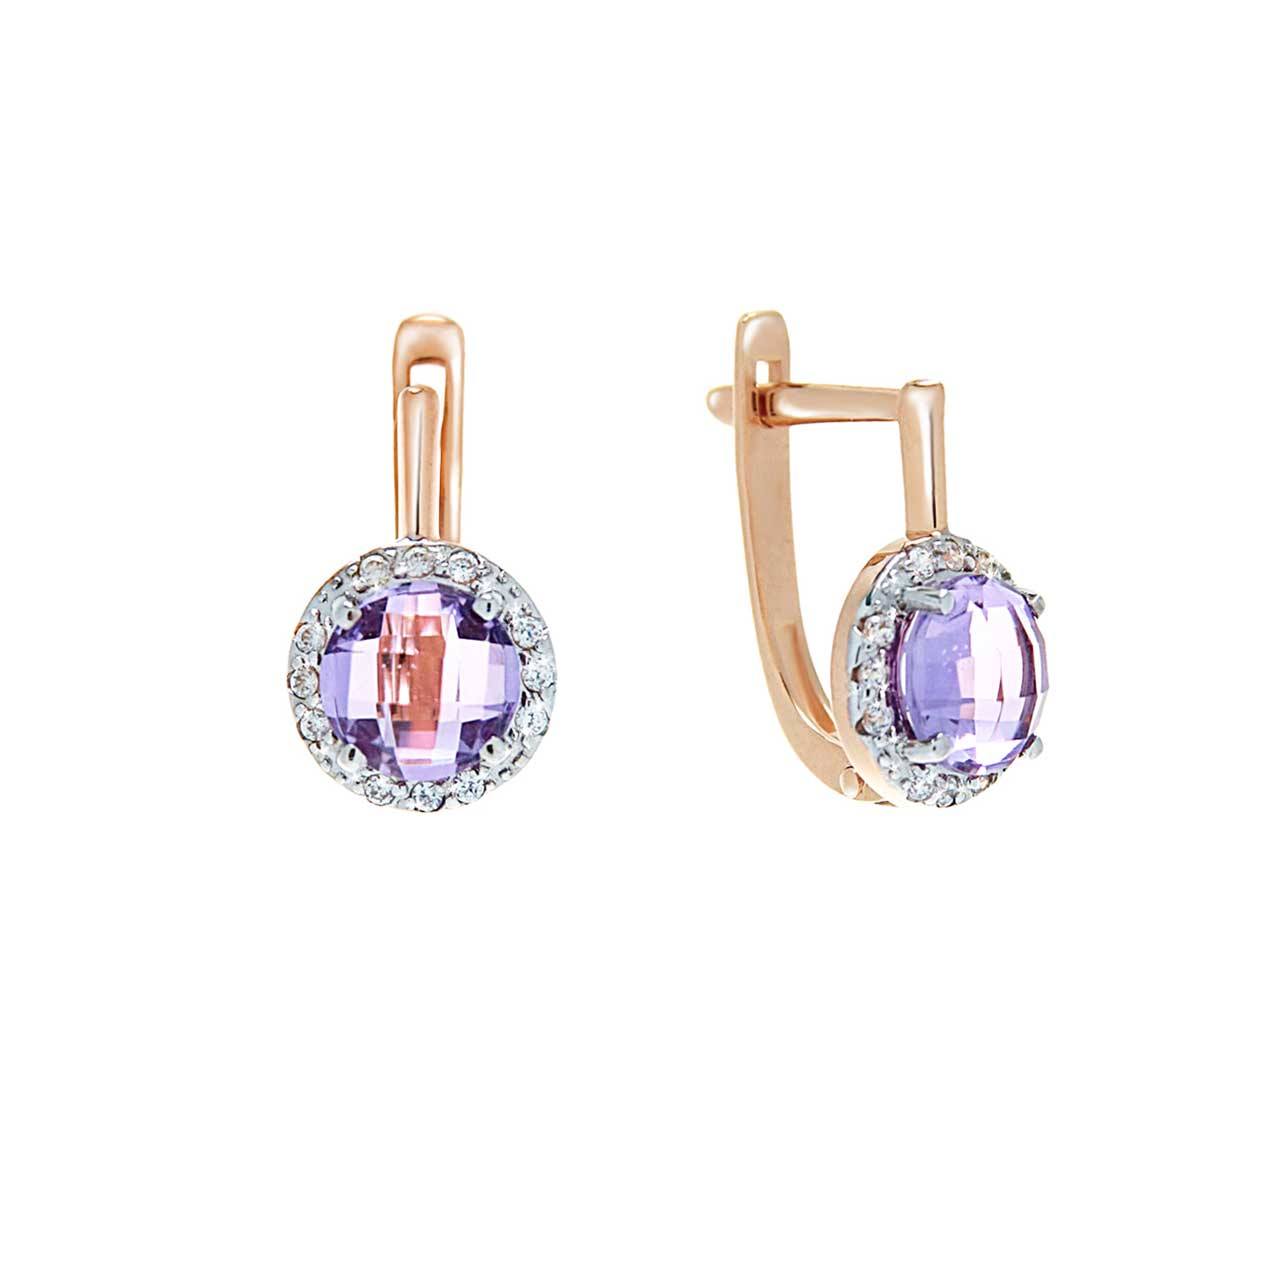 Fancy Cut Amethyst Earrings